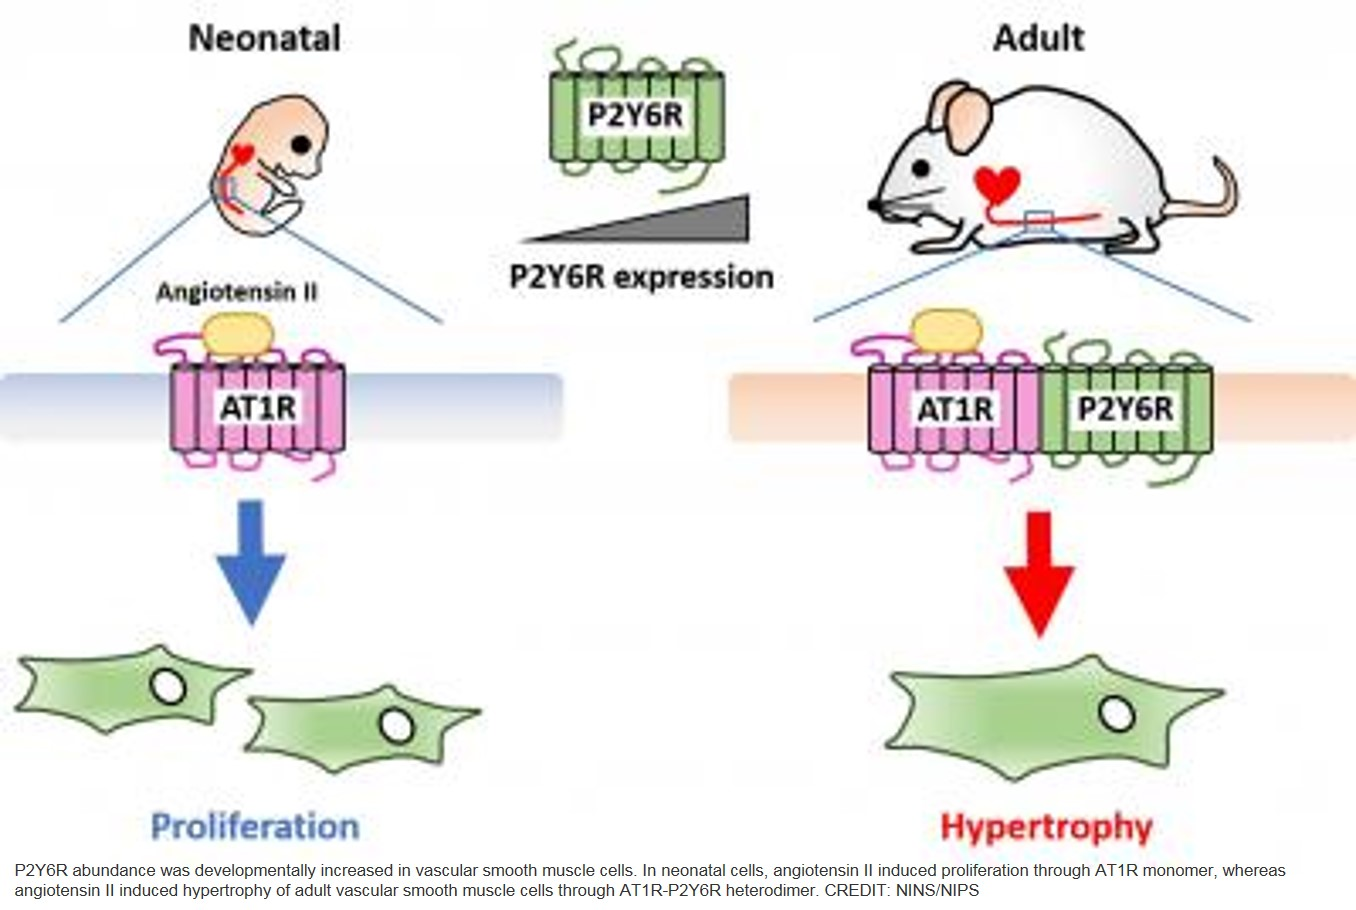 The age-related changes in receptor promotes hypertension